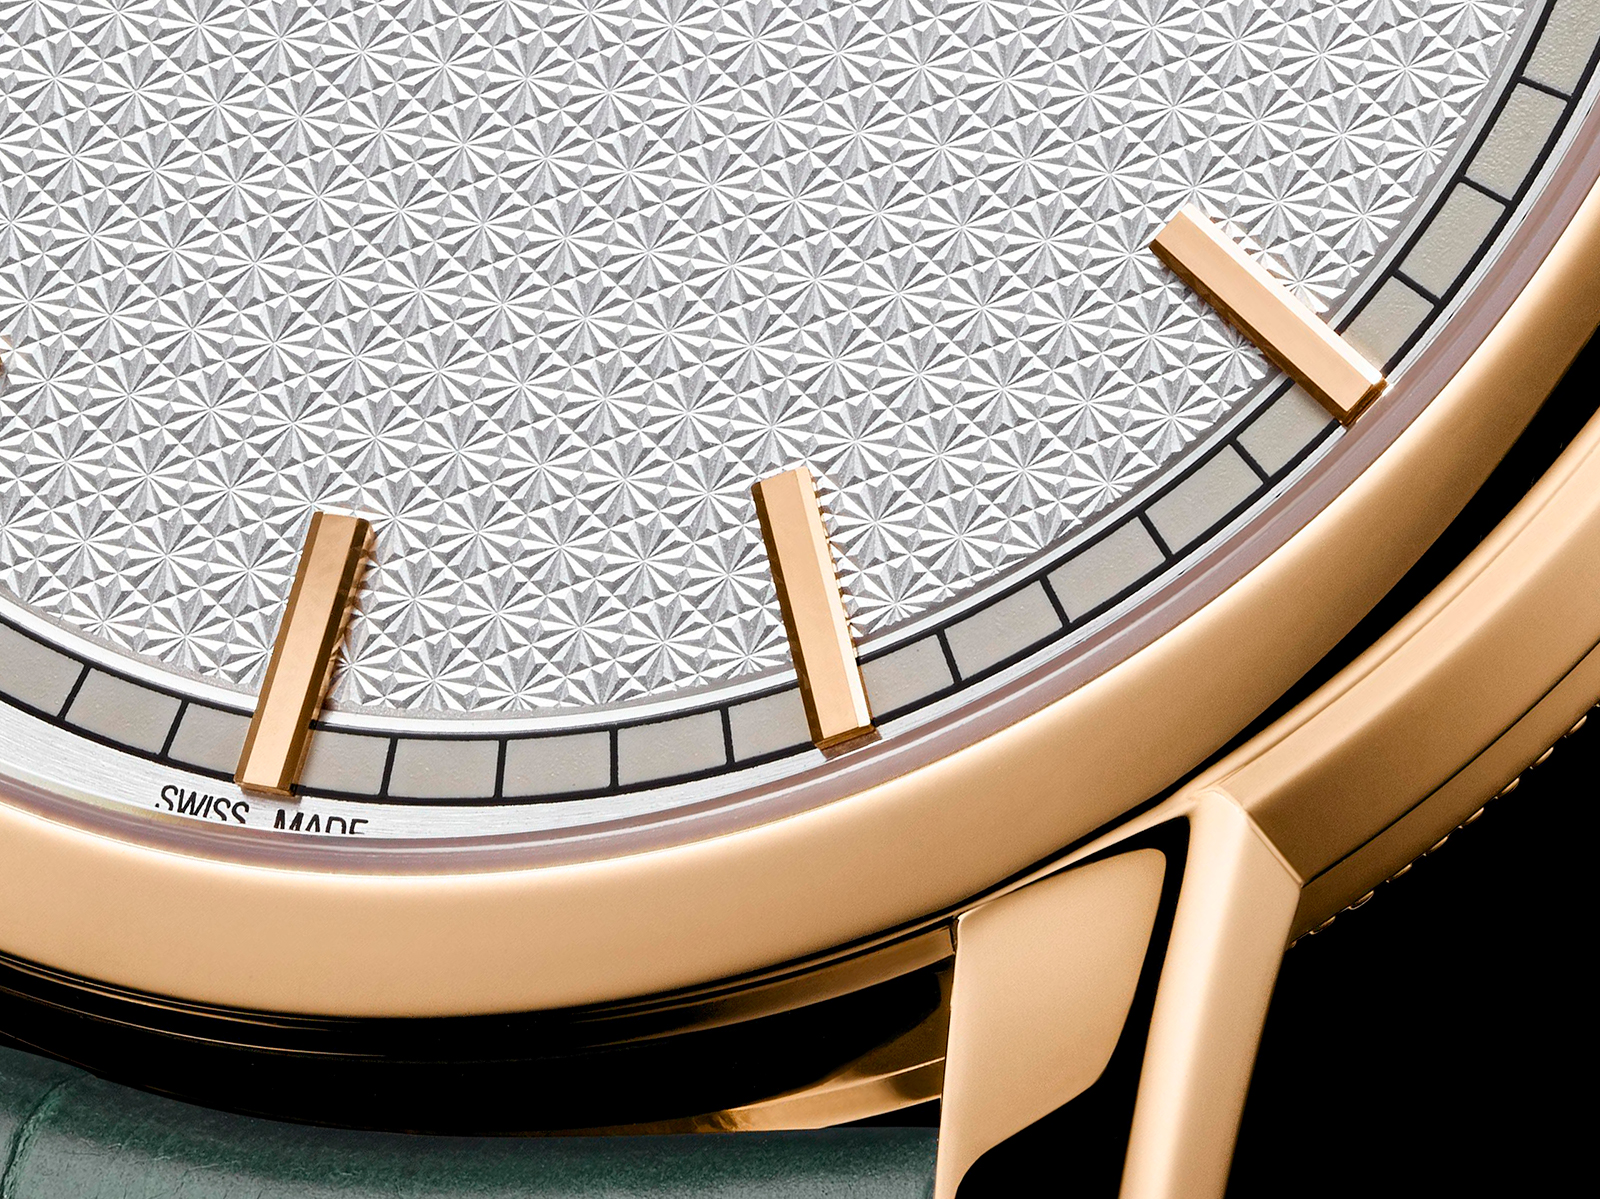 Vacheron Constantin Traditionnelle Self-Winding Harrod_s dial close up